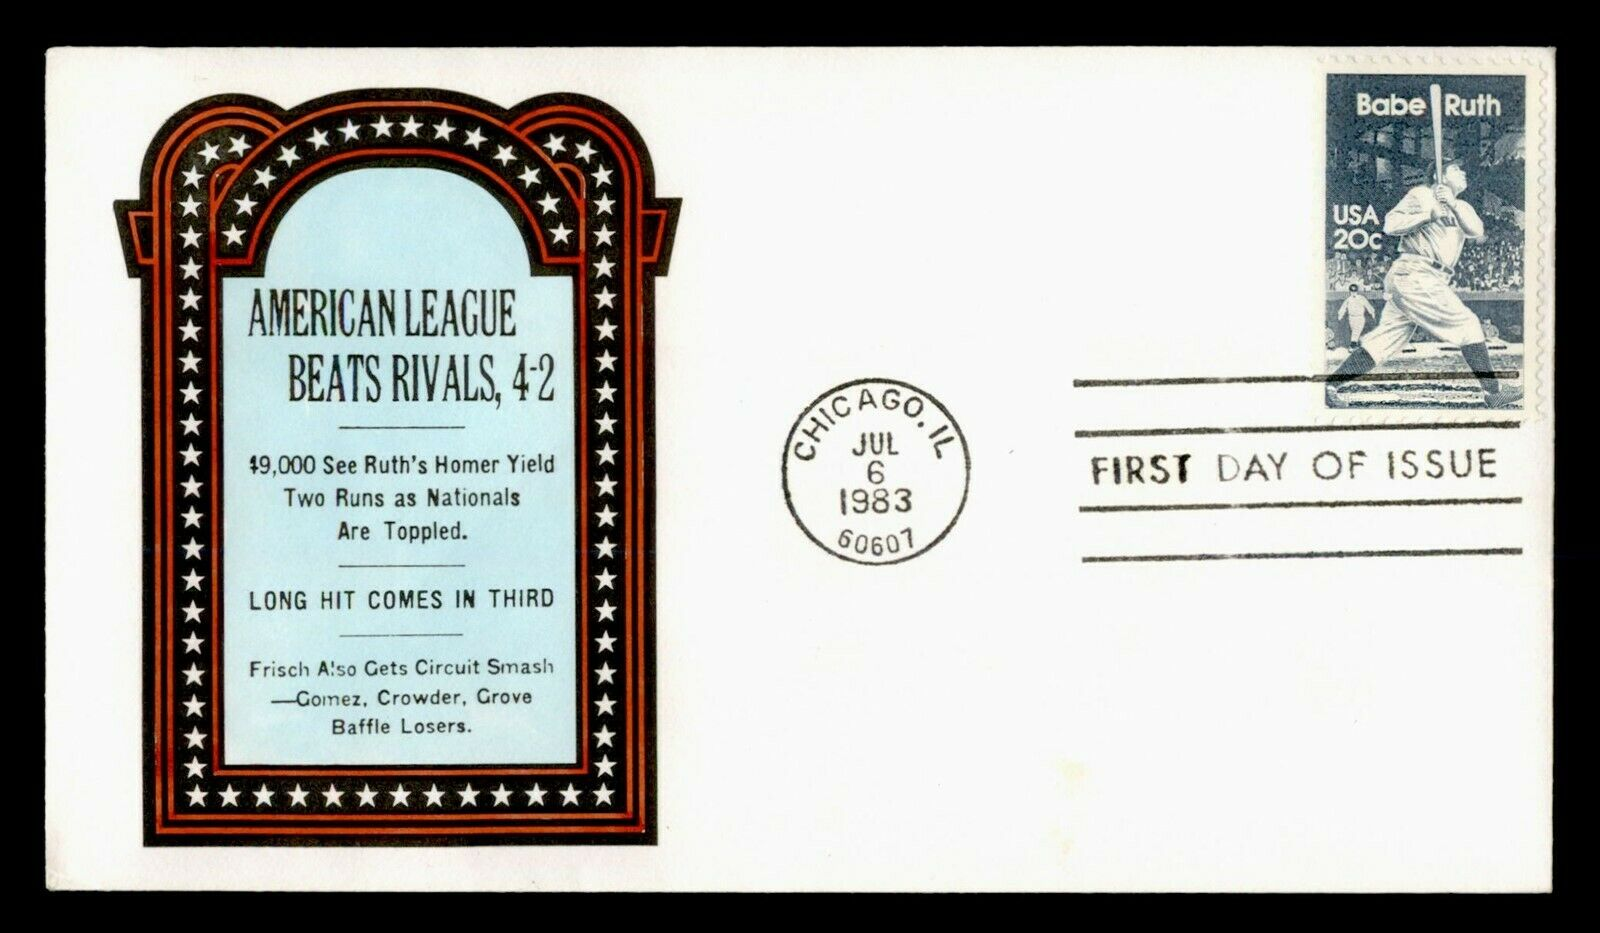 DR WHO 1983 FDC BABE RUTH BASEBALL PLAYER C218651 - $0.55